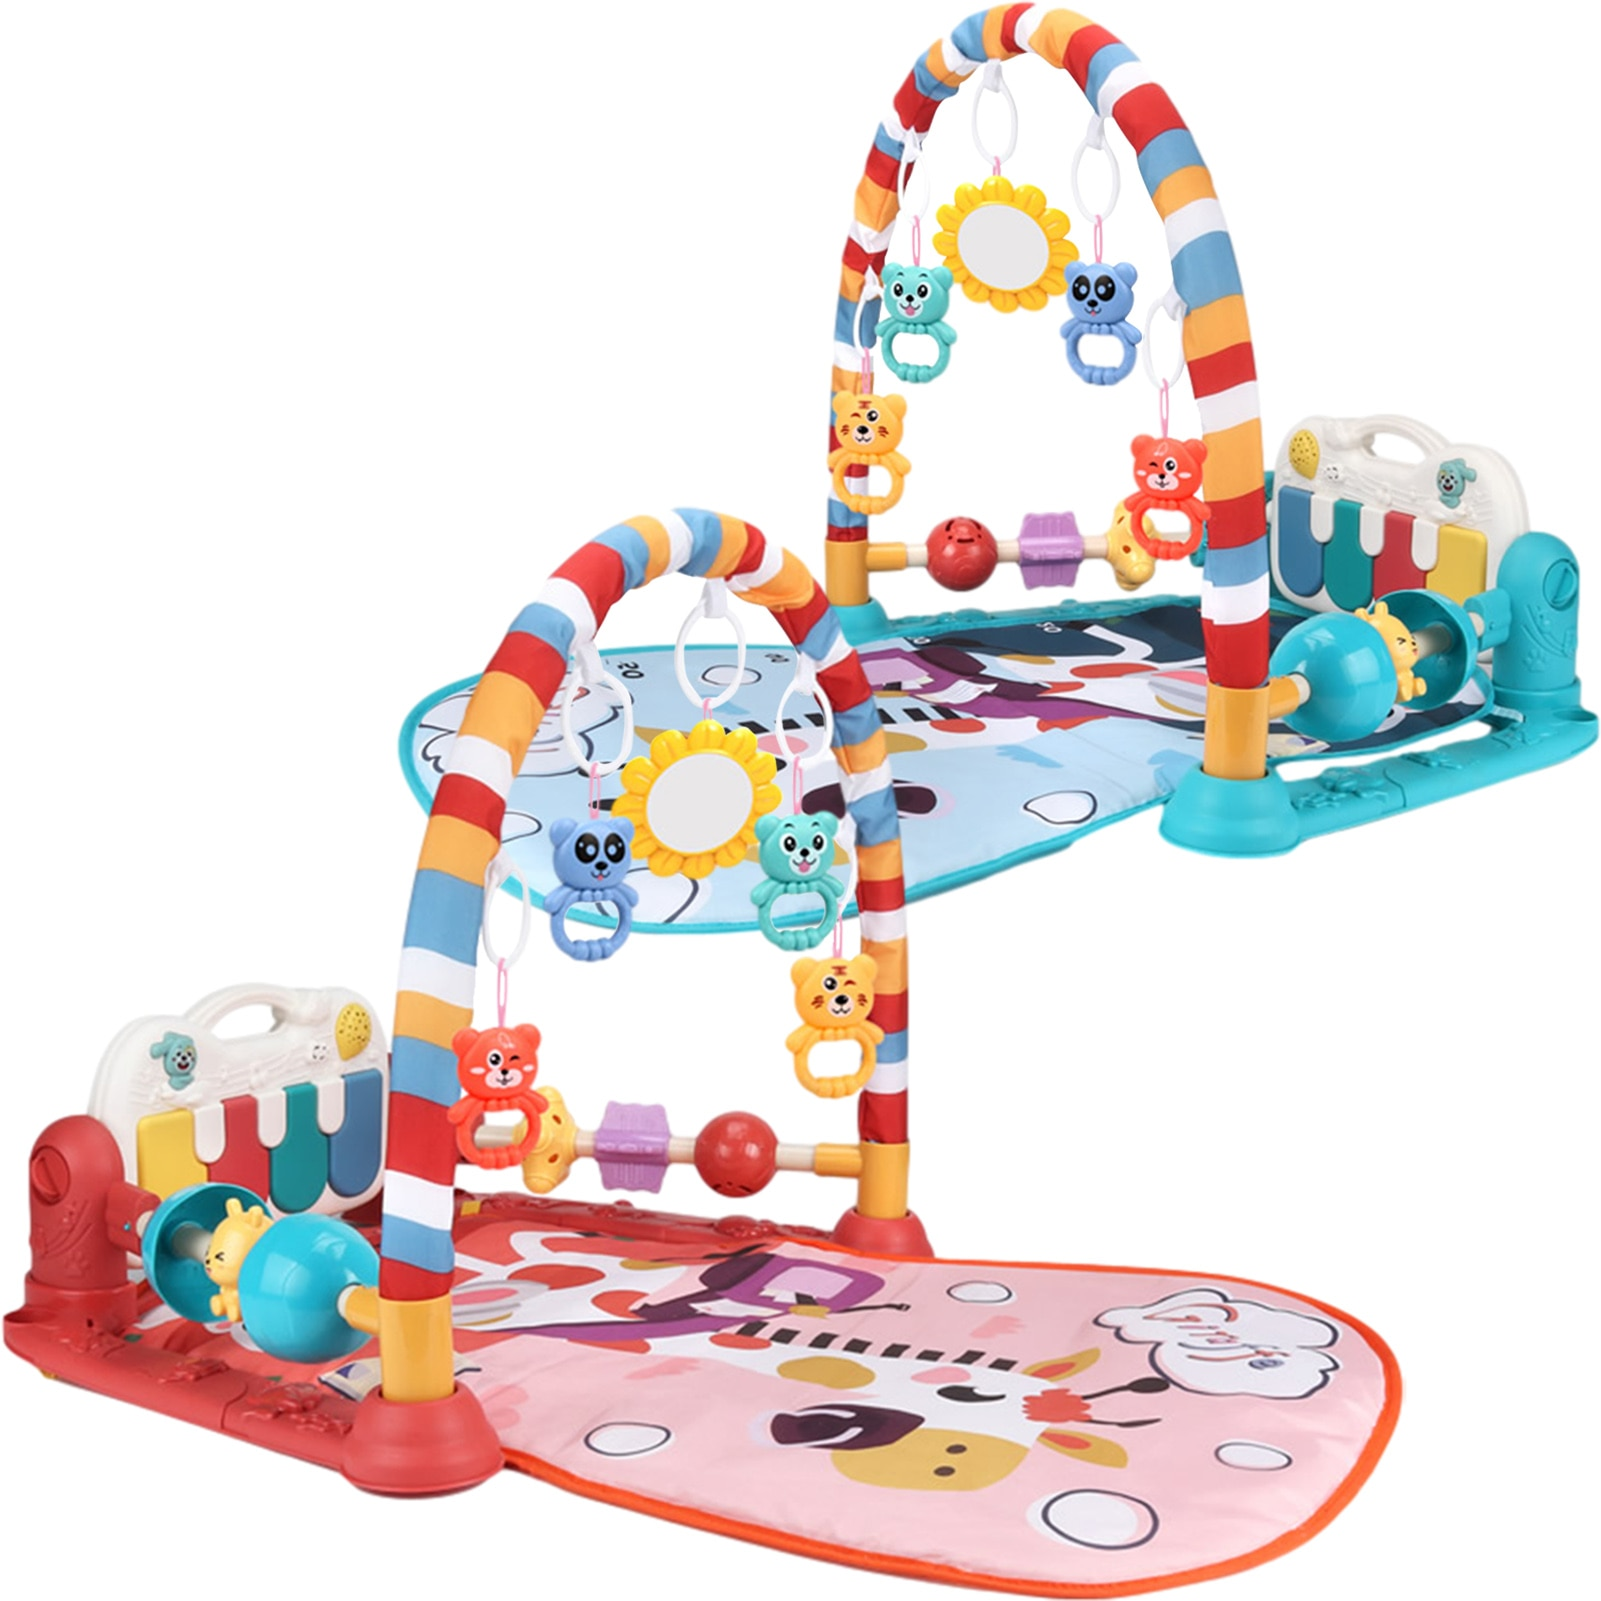 infant baby flying chess waterproof play mat early learning toy fitness bodybuilding frame crawling mat kick play lay sit toy New Baby Play Mat With Music & Lights Educational Rack Toys Kick Play Piano Activity Gym Infant Playmat Crawling Game Pad Toy